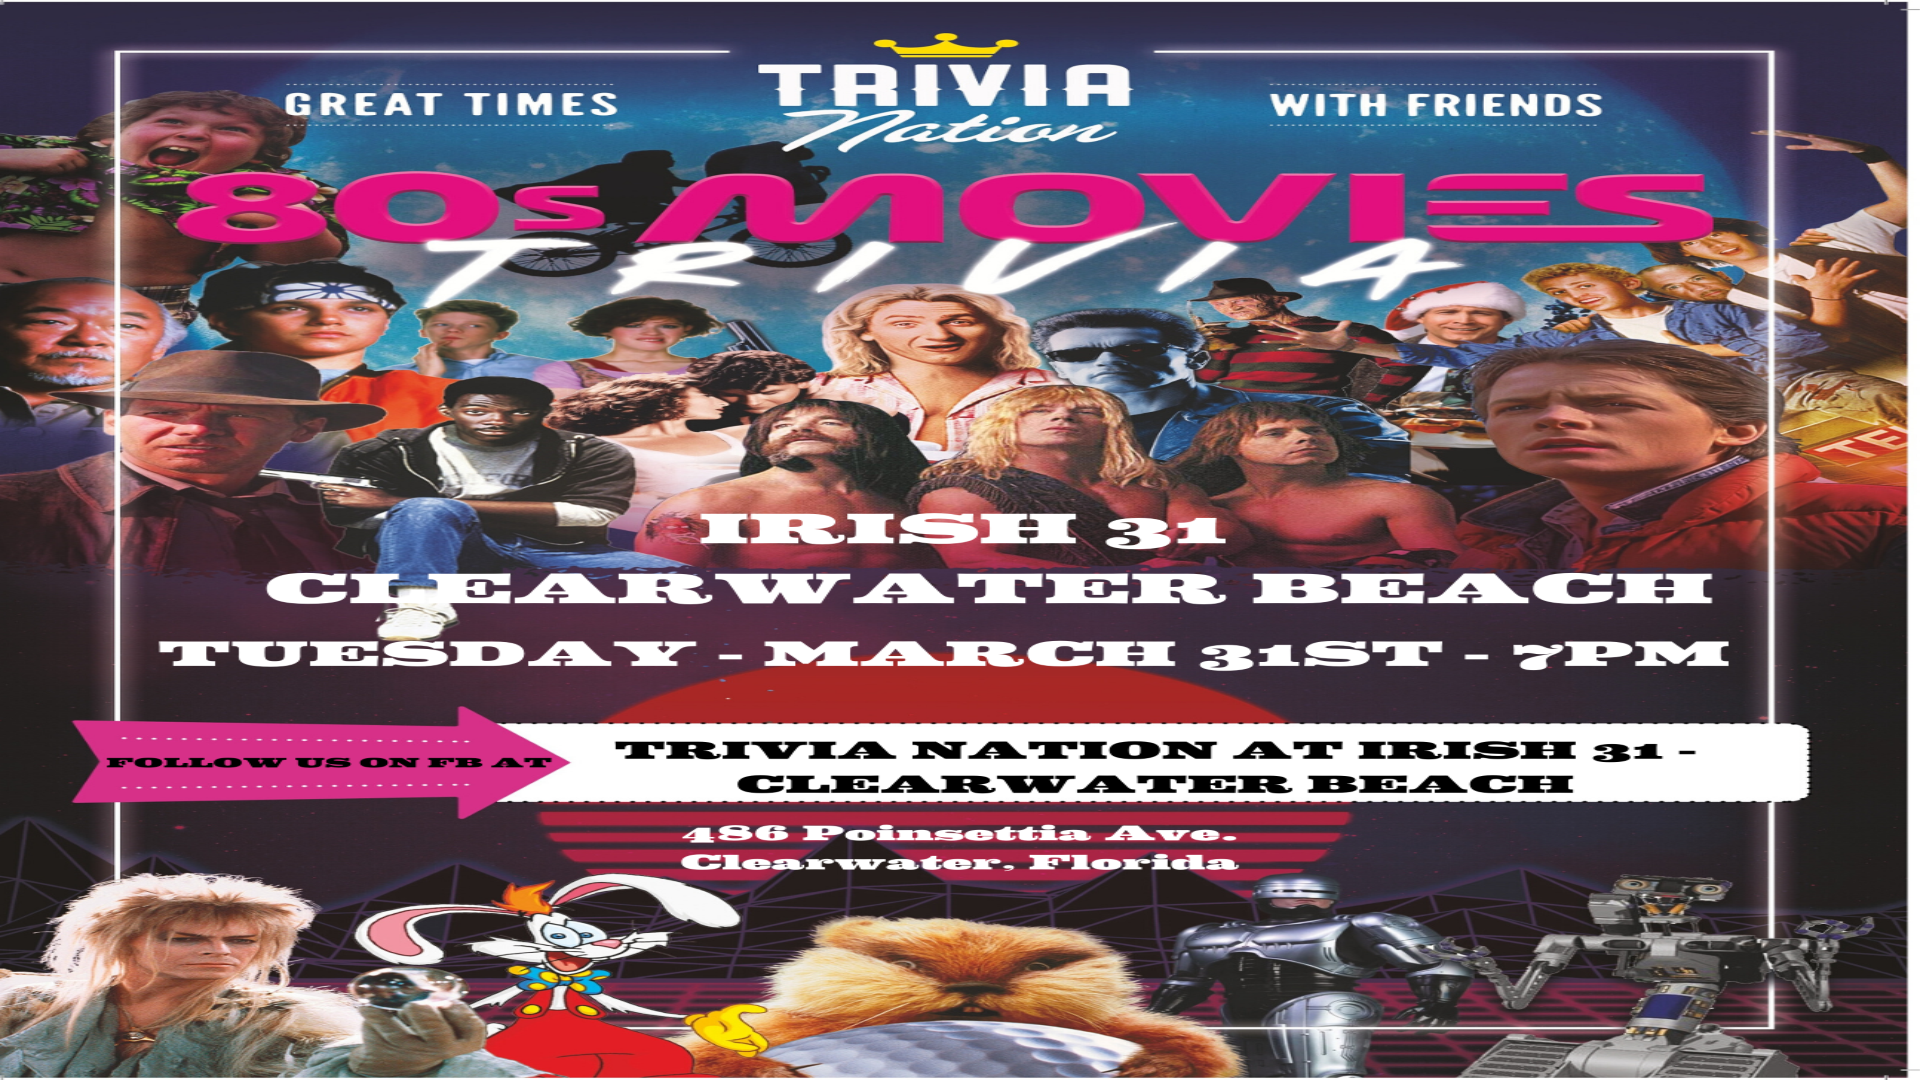 The 80s Movies Themed Live Trivia Night at Virtual Trivia via Zoom